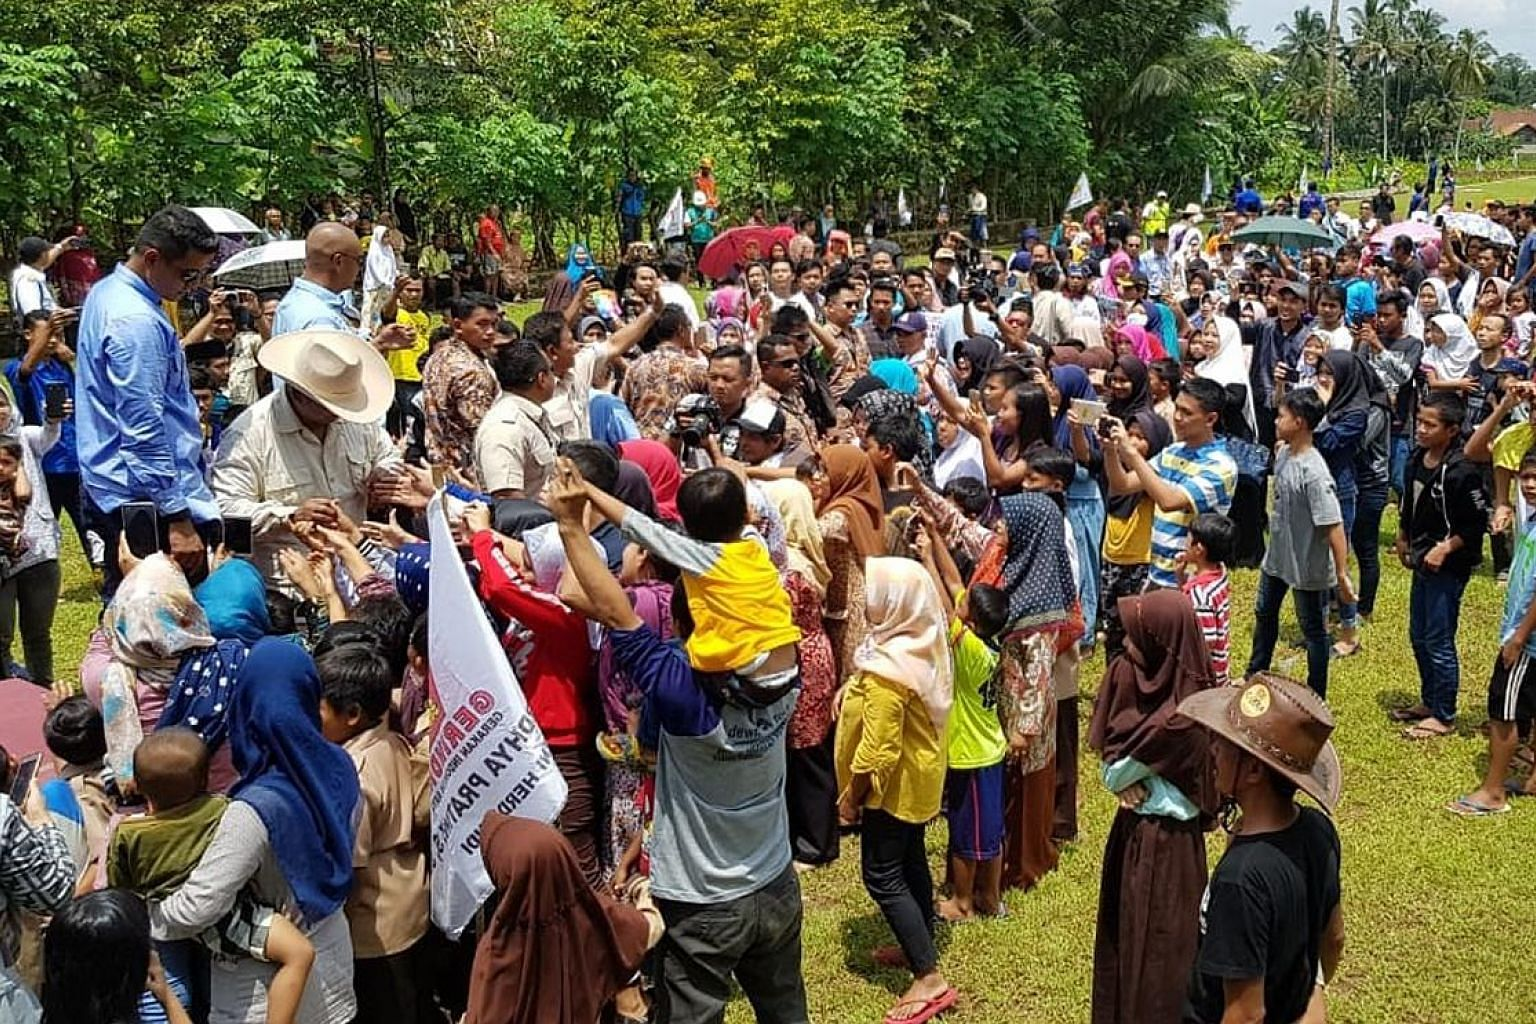 Mr Prabowo speaking in Ciamis yesterday, where he promised, if elected, to cut electricity costs within his first 100 days in office. A crowd bidding farewell to Mr Prabowo Subianto in Ciamis regency after his campaign stop there yesterday. The modes